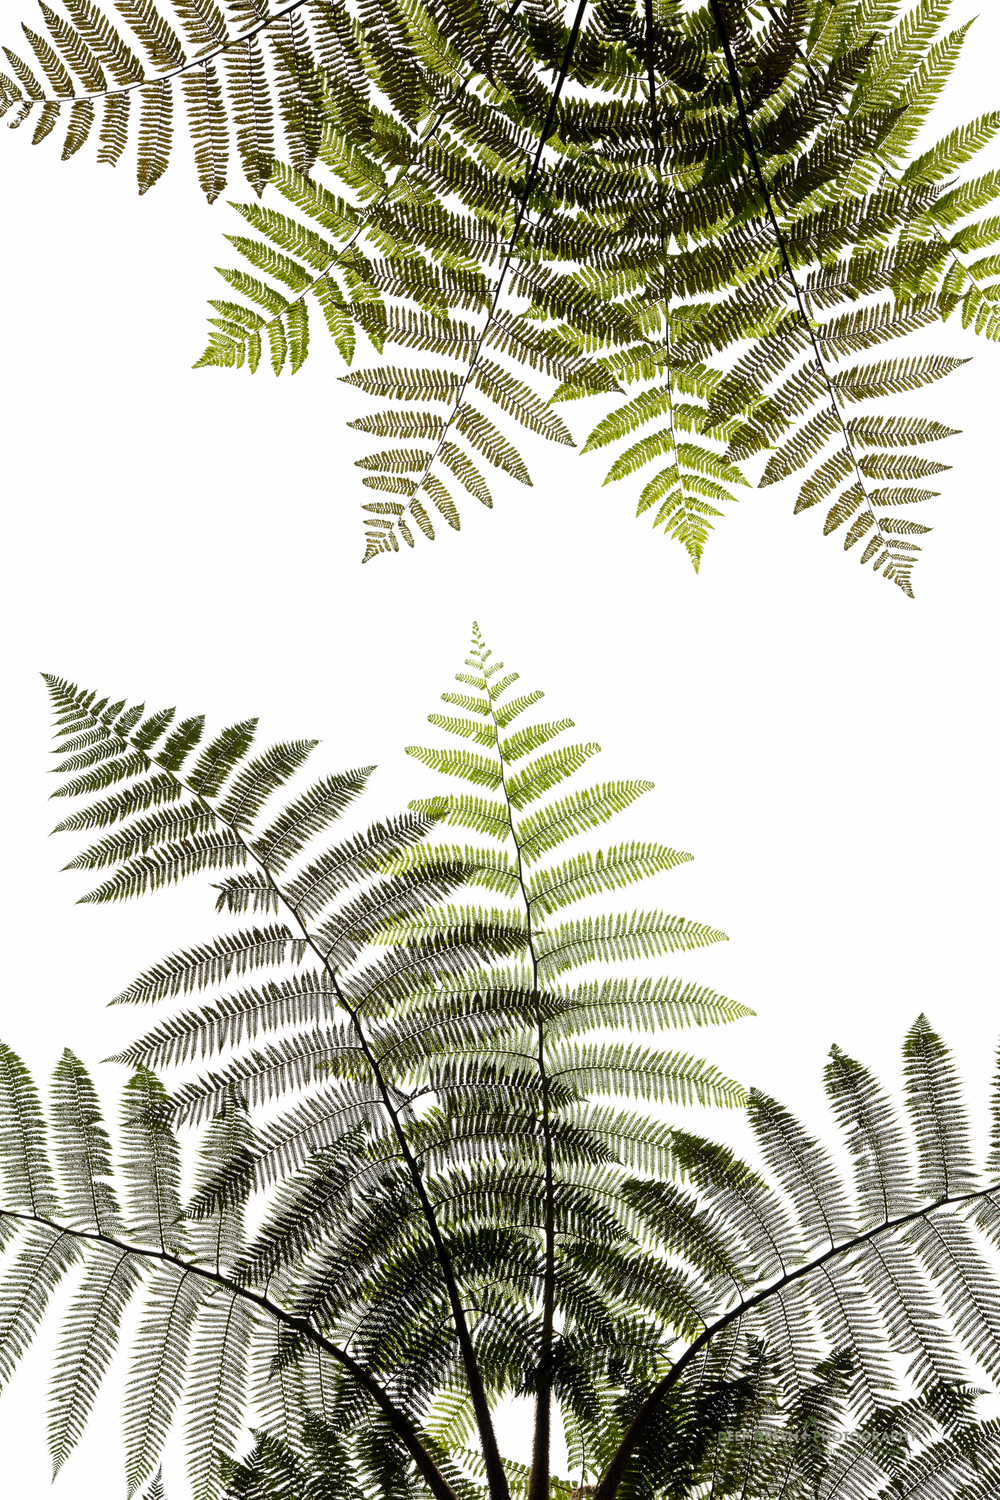 Nature produces art, even in the chaotic envionrment of the tropical cloud forest. By searching carefully, I was able to produce a graphic image of tree fern leaves in a cloud forest in western Ecuador